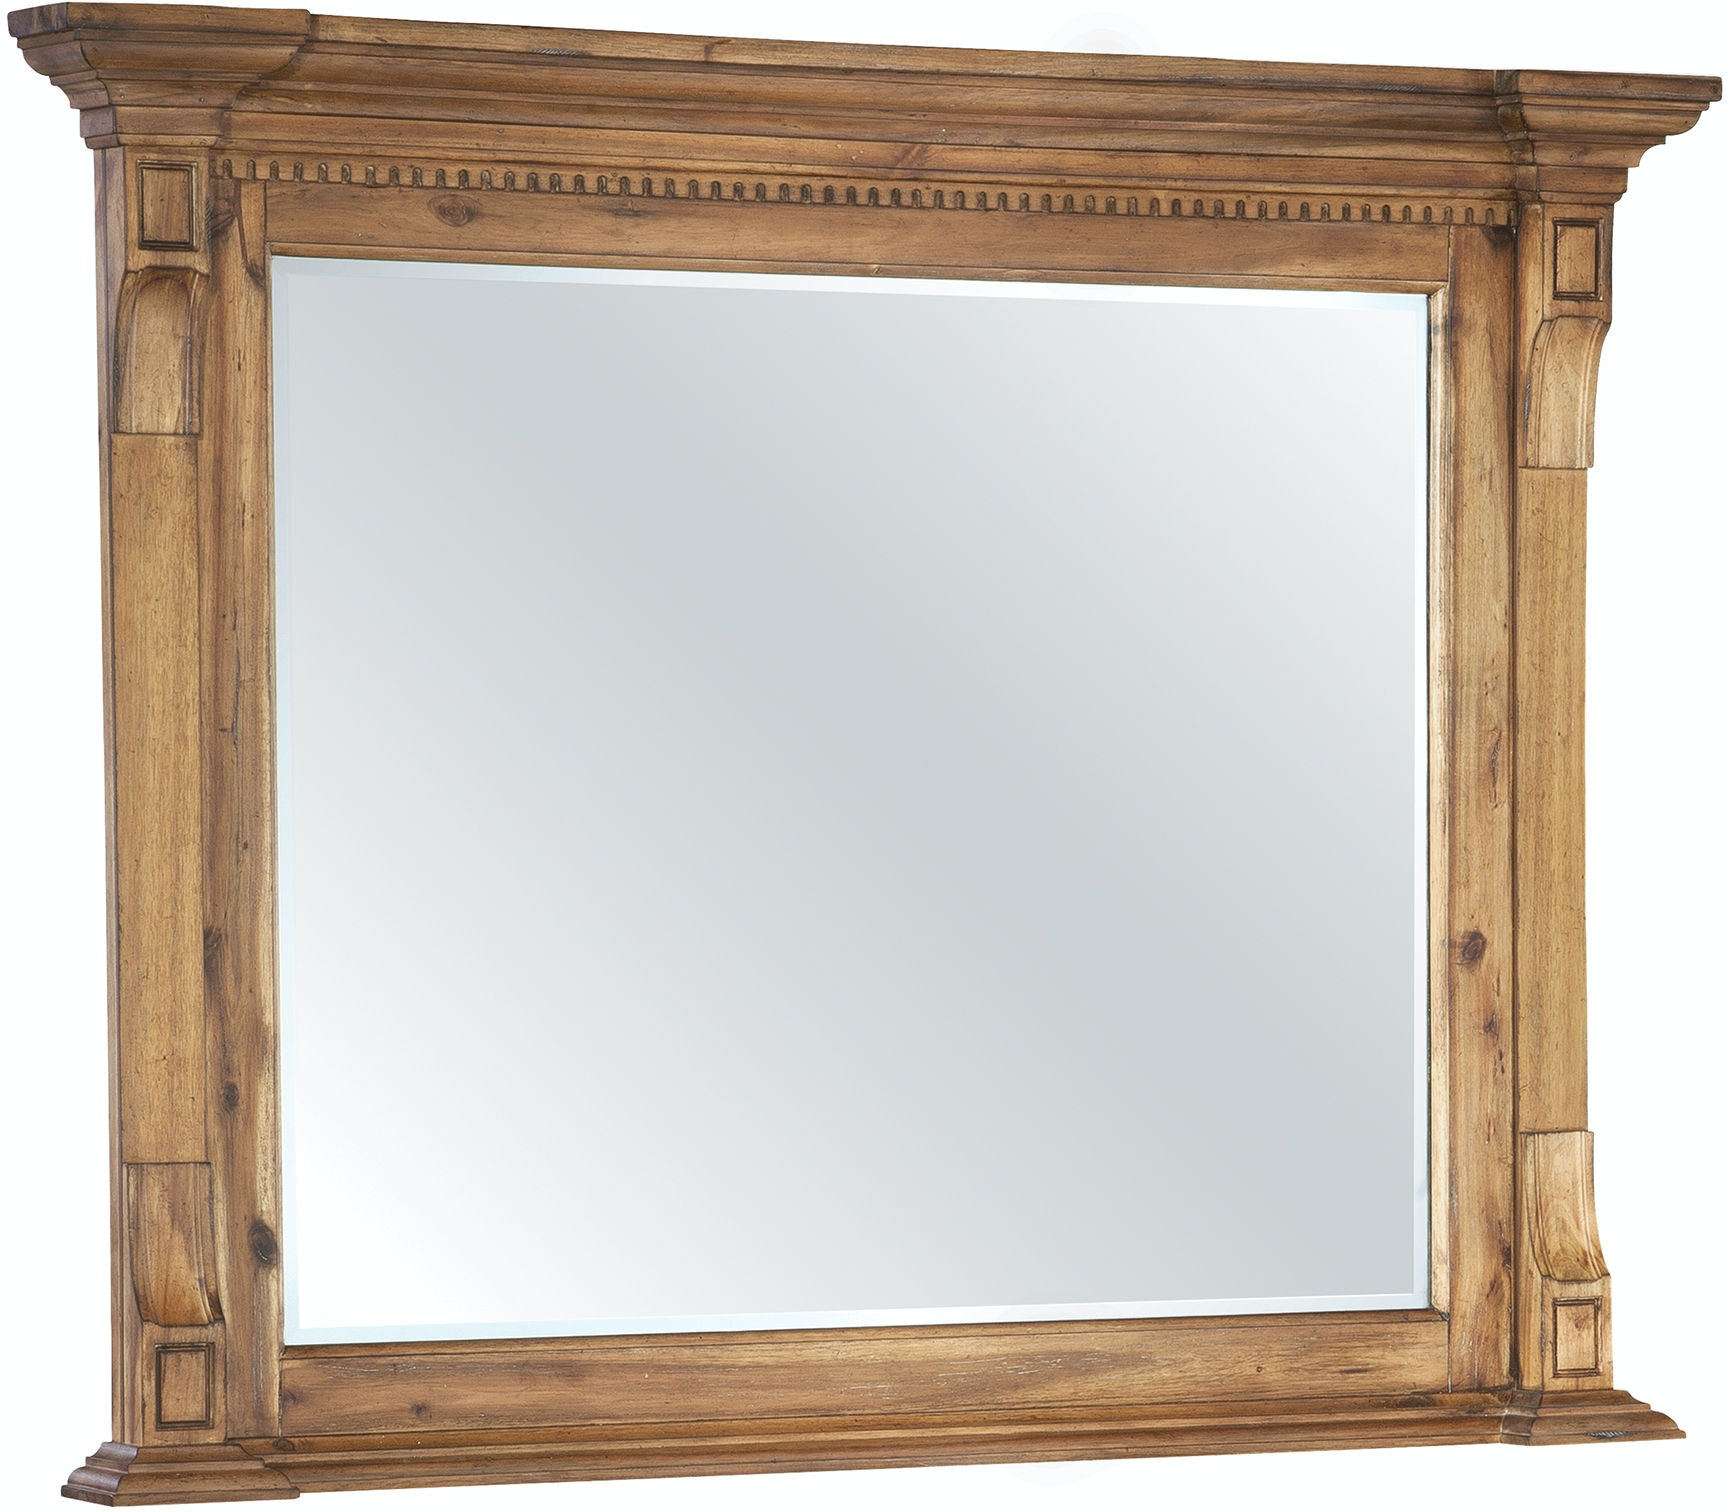 mirror cabinet hekman accessories mirror 23367 giorgi brothers south 23368